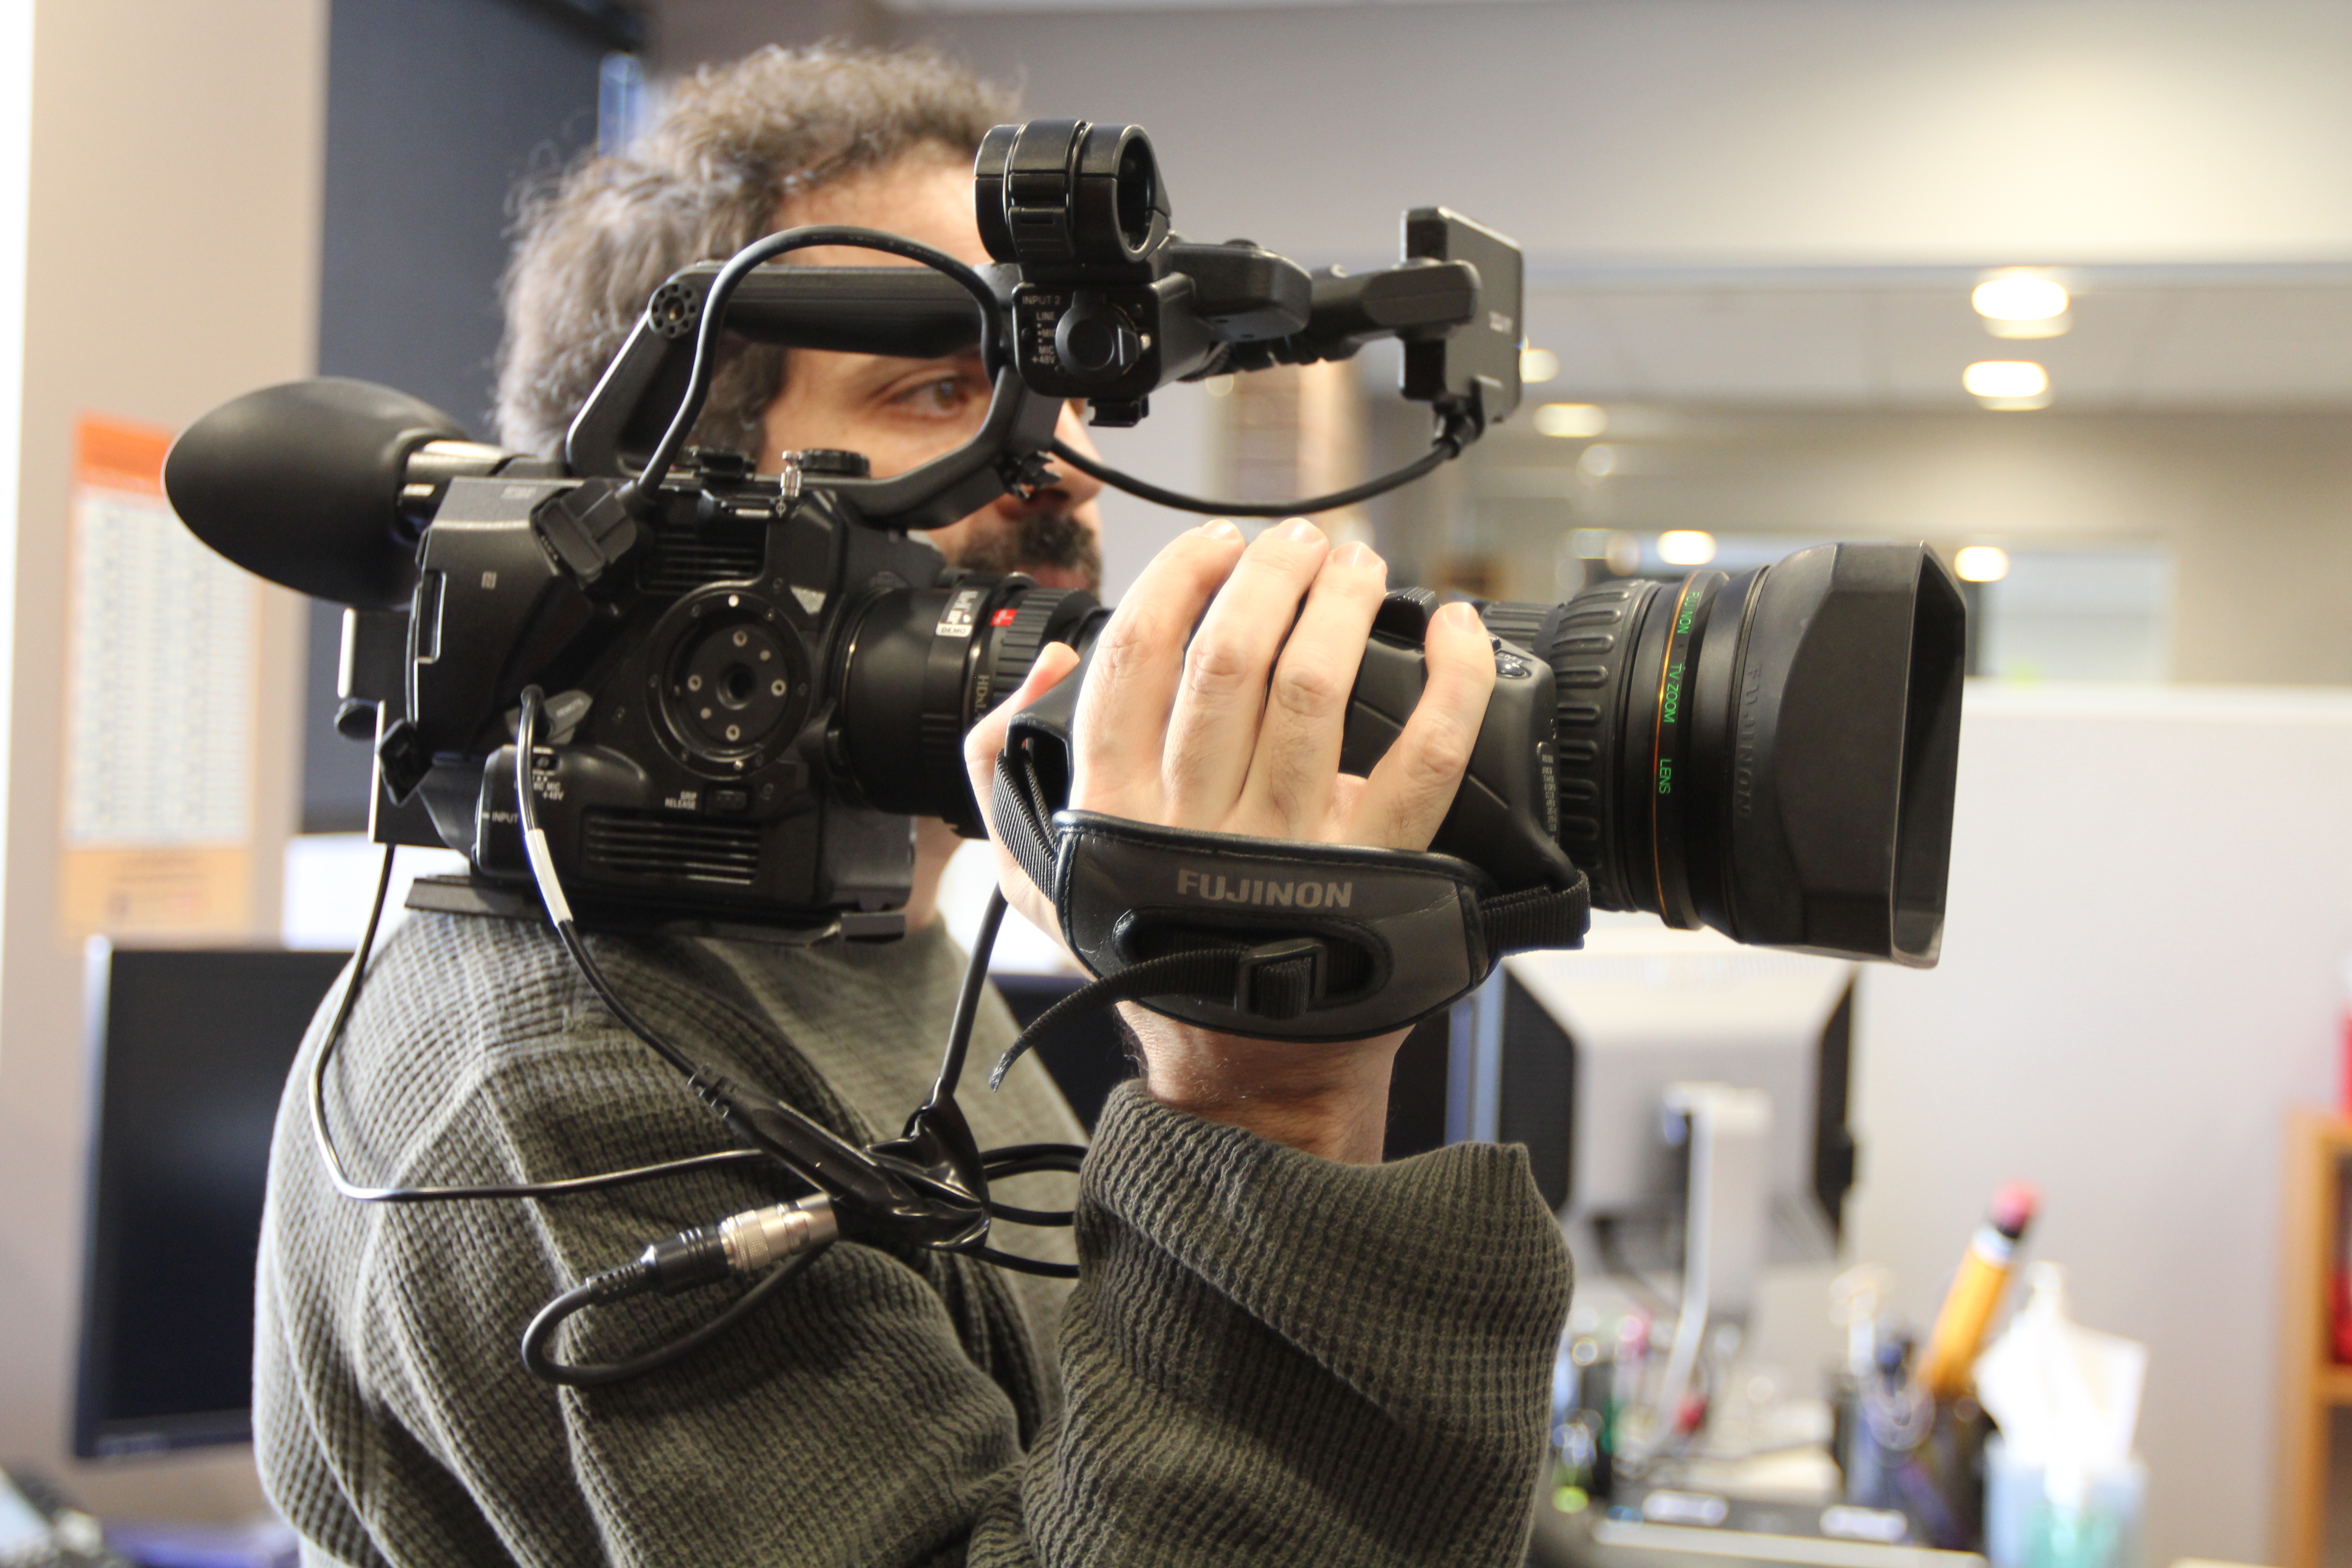 Enabling a 68x Zoom Range on Sony FS5 with Cameo LANC Cable